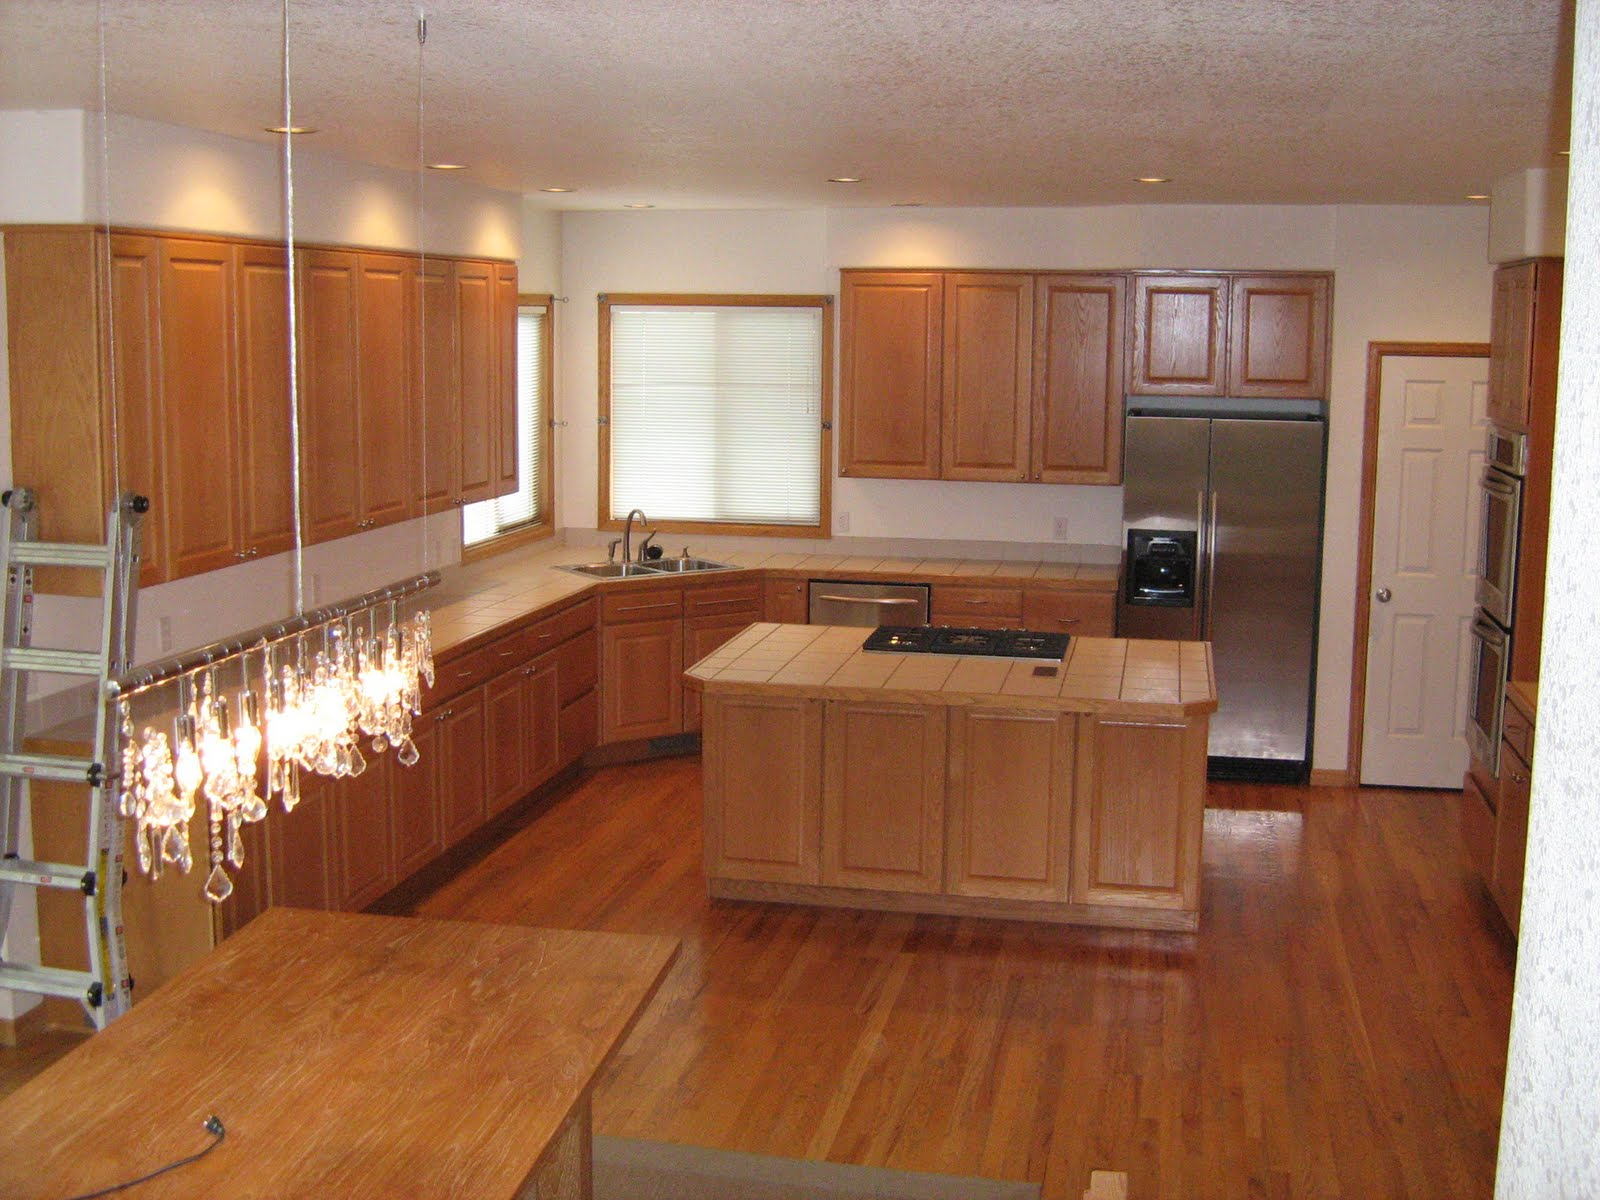 Oak Floor Cabinets Integrity Installations A Division Of Front